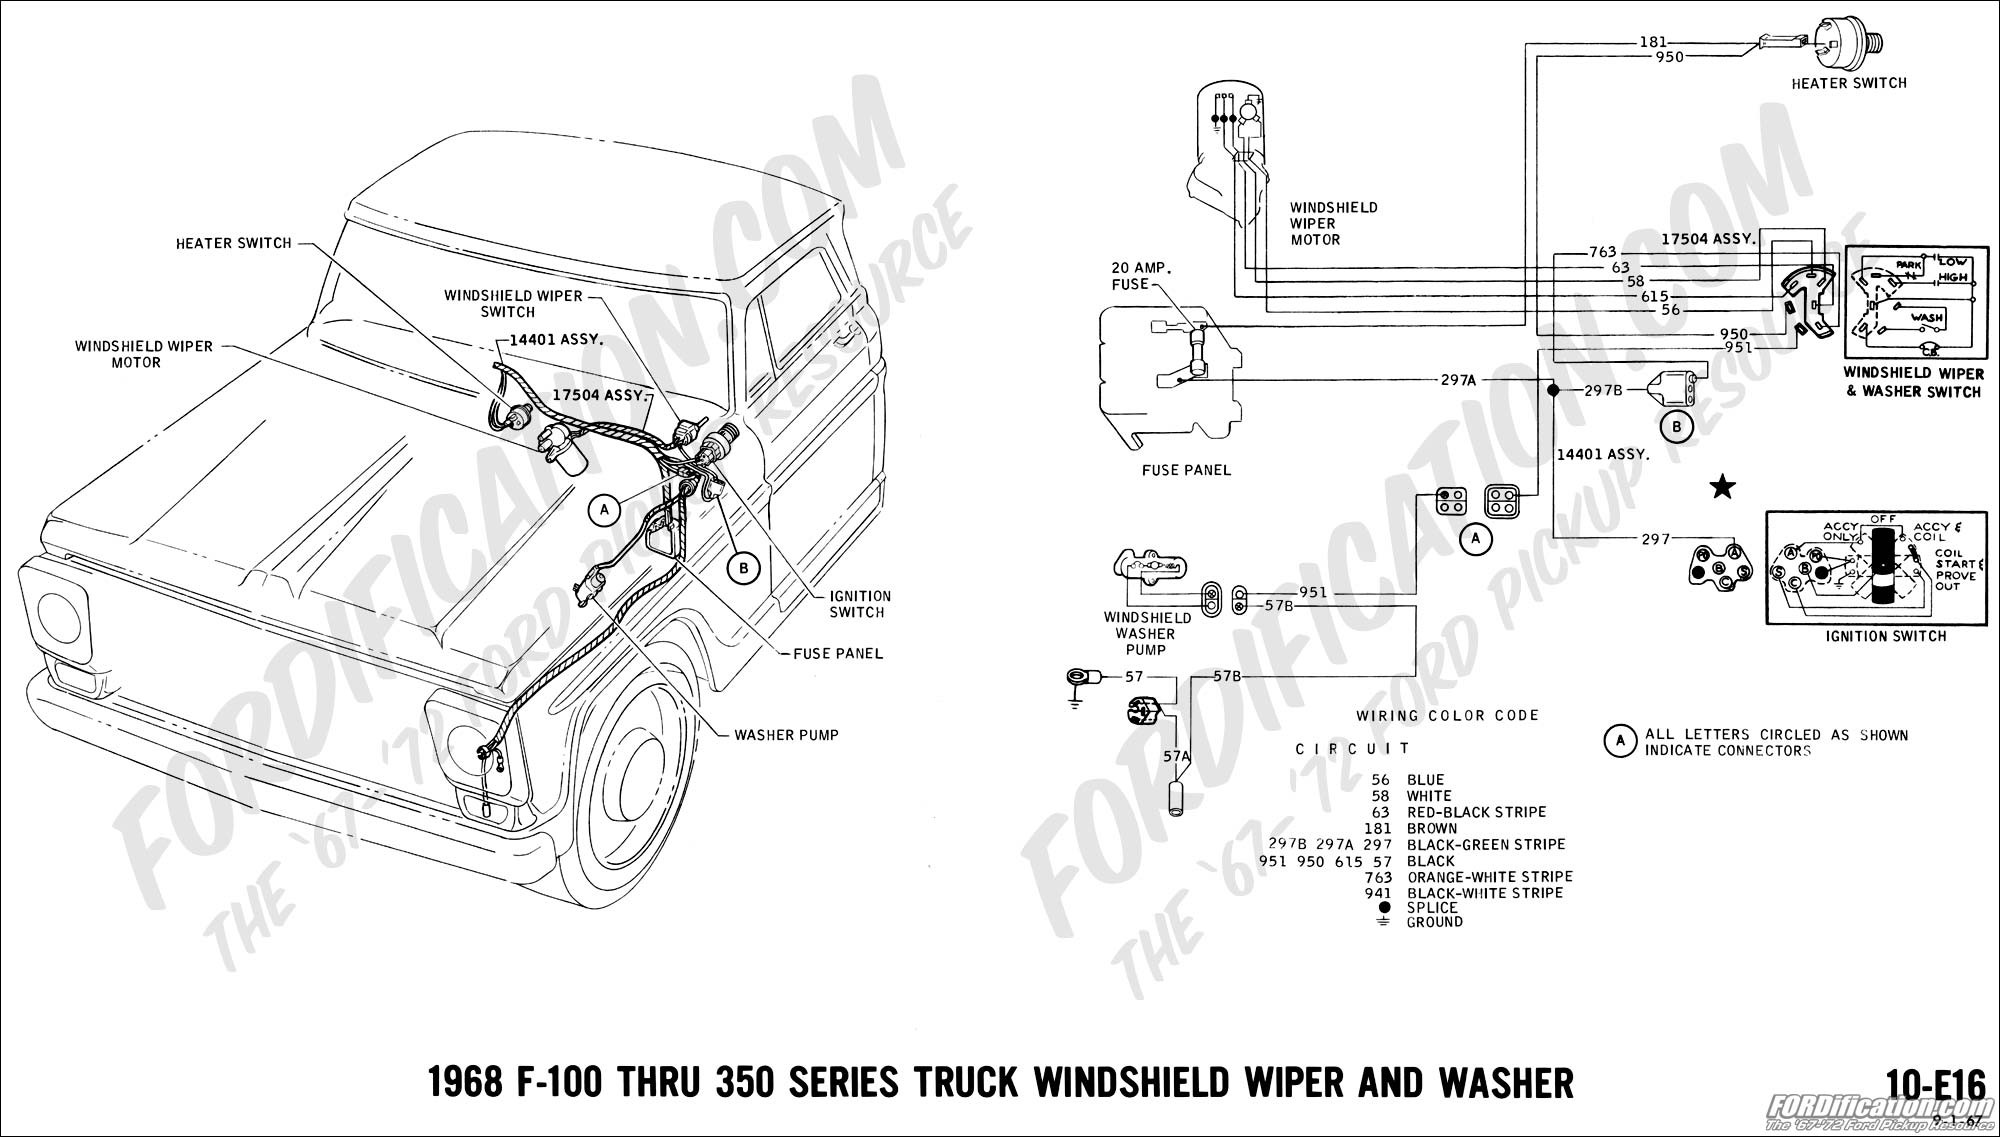 1985 Ford Alternator Wiring Diagram Auto Electrical Nissan Hardbody Engine Schematics Voltage Regulator F250 Drive